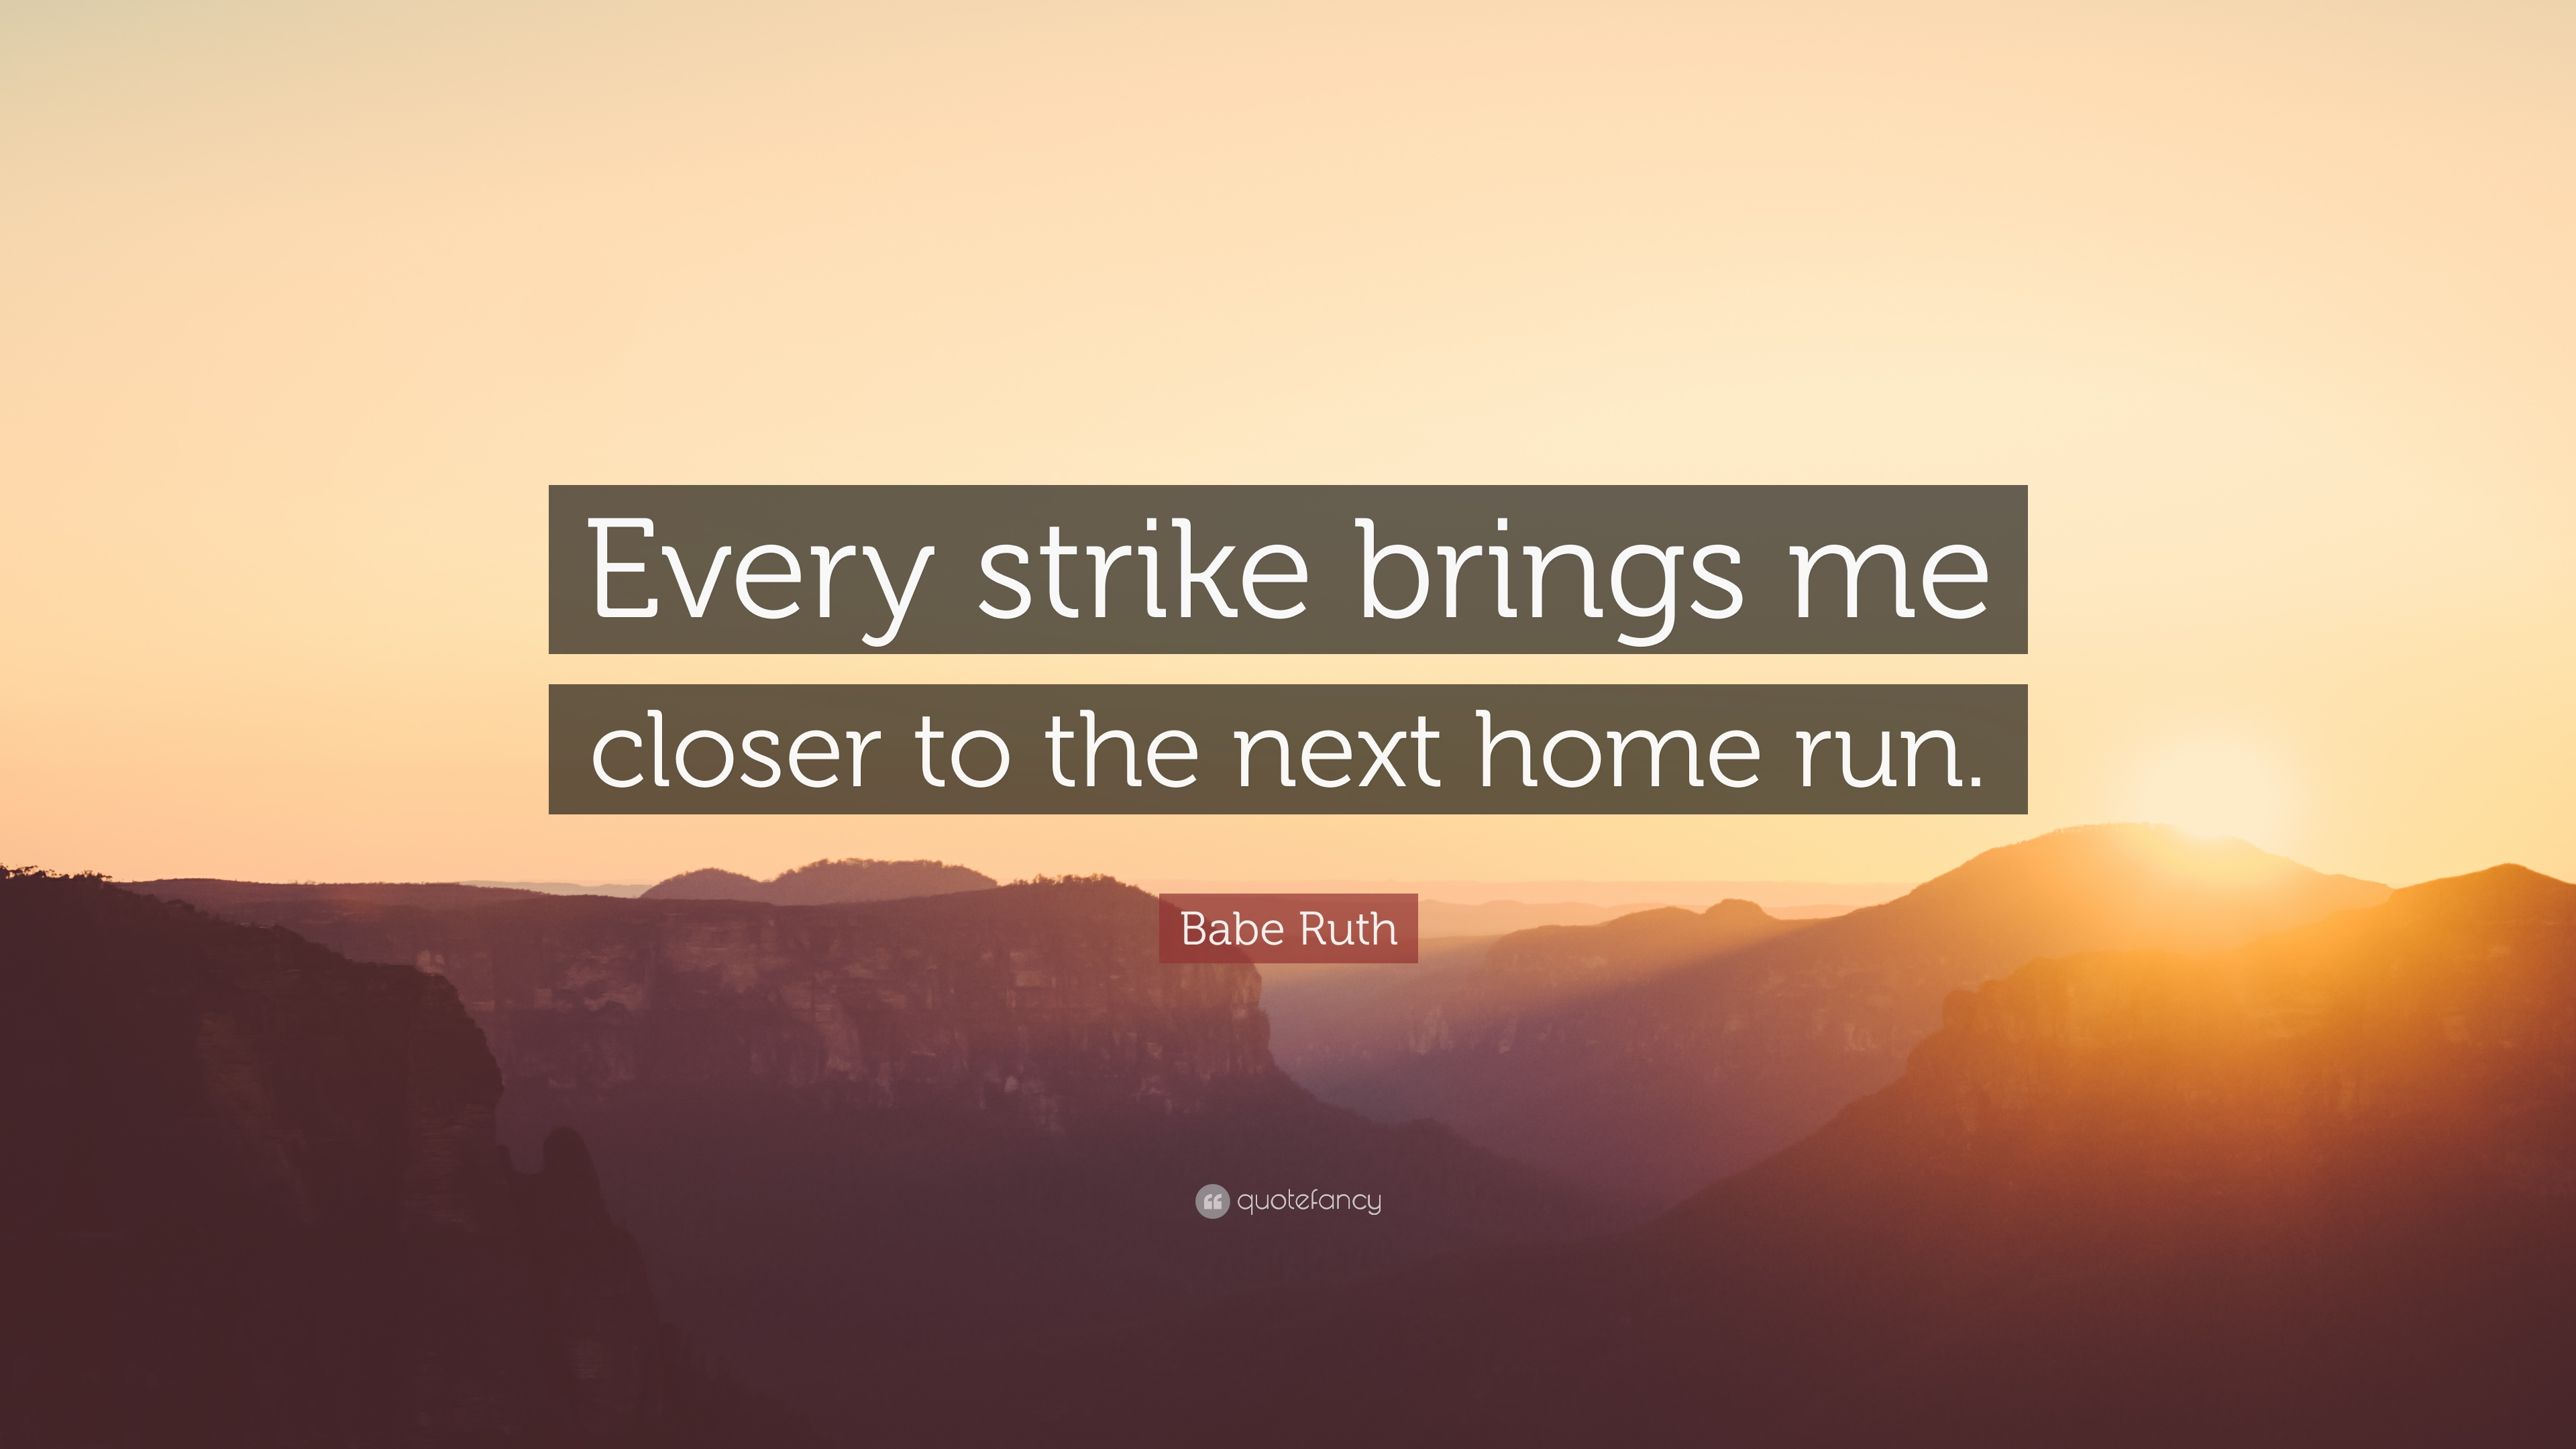 babe ruth quote every strike brings me closer to the. Black Bedroom Furniture Sets. Home Design Ideas